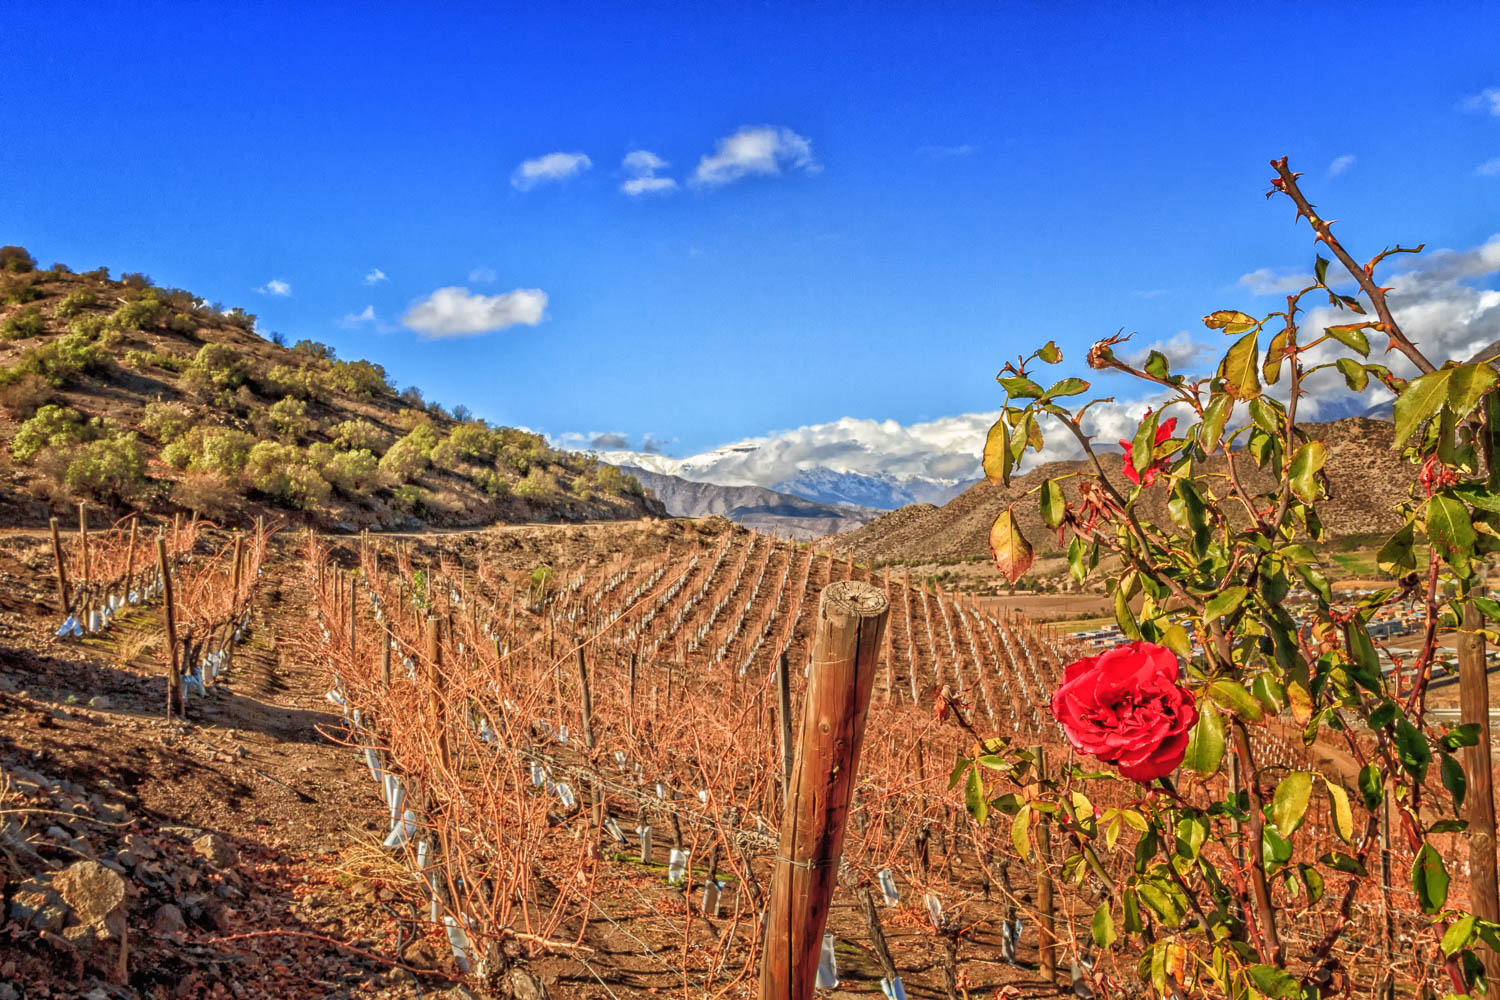 Roses and Andes